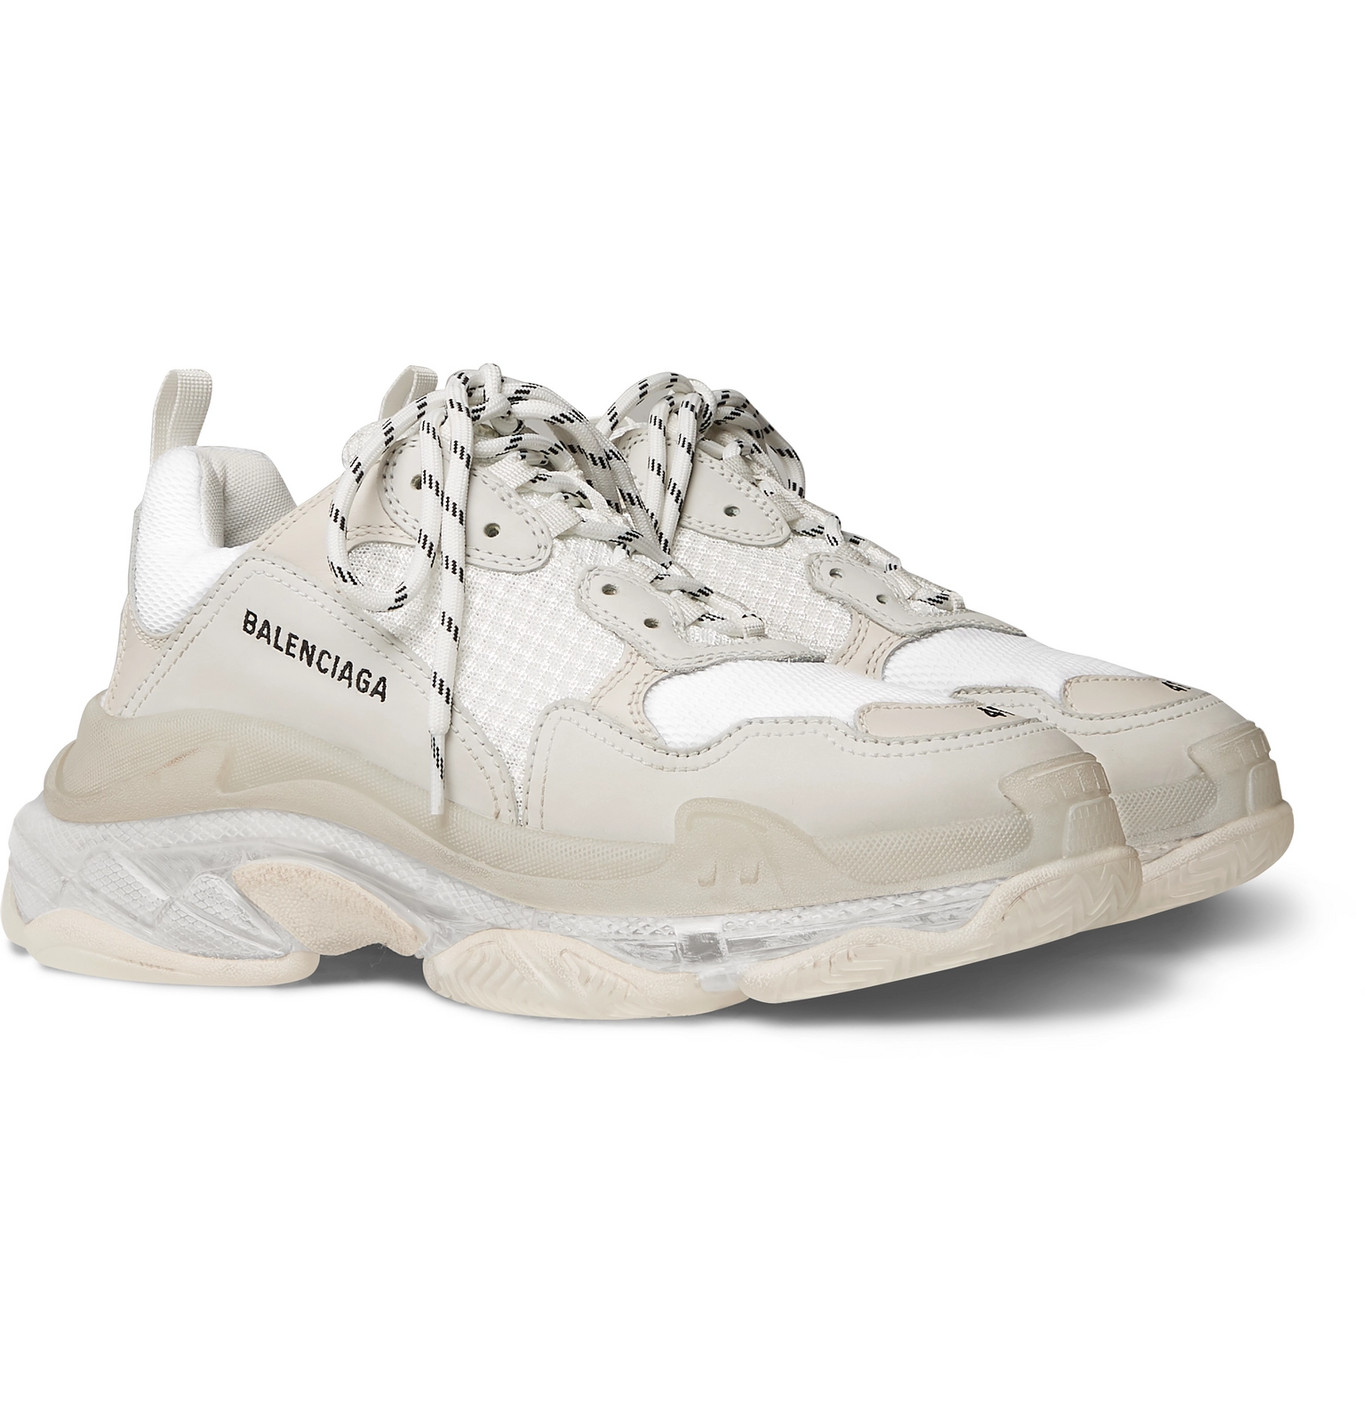 VERT ACiDE Triple S Trainers for Men Balenciaga